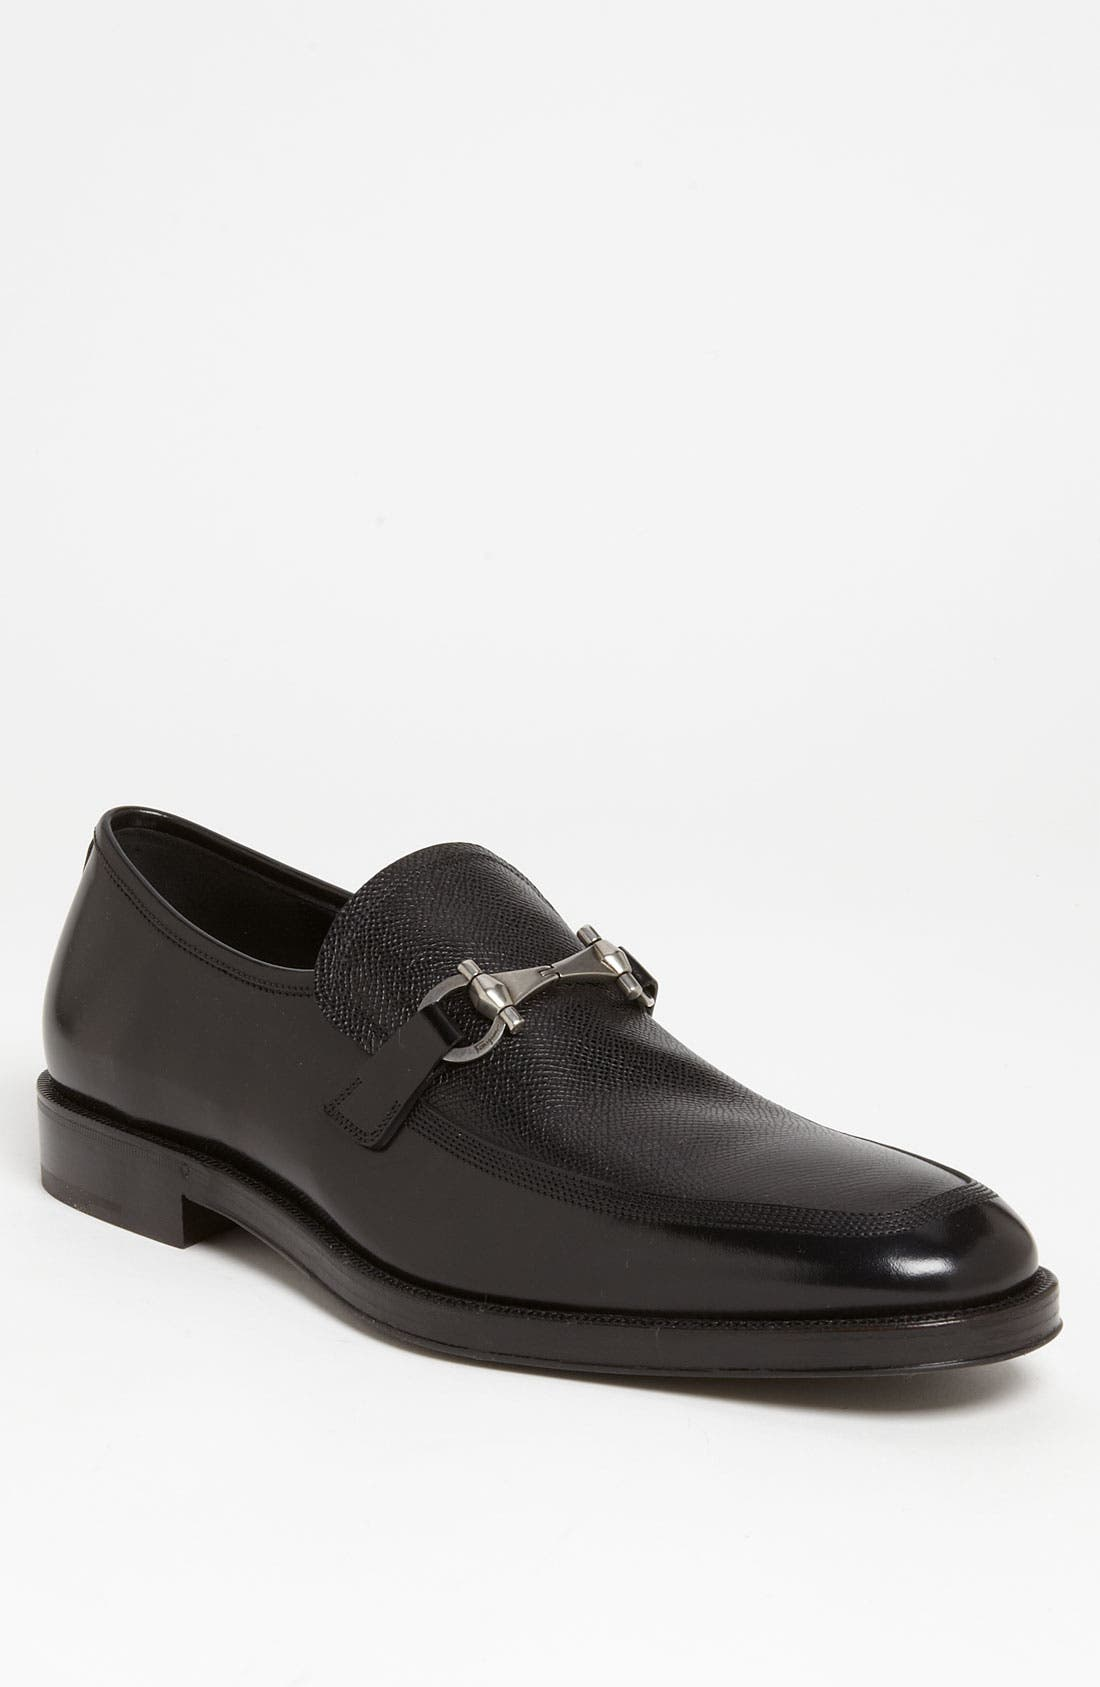 Alternate Image 1 Selected - Salvatore Ferragamo 'Asmara' Bit Loafer